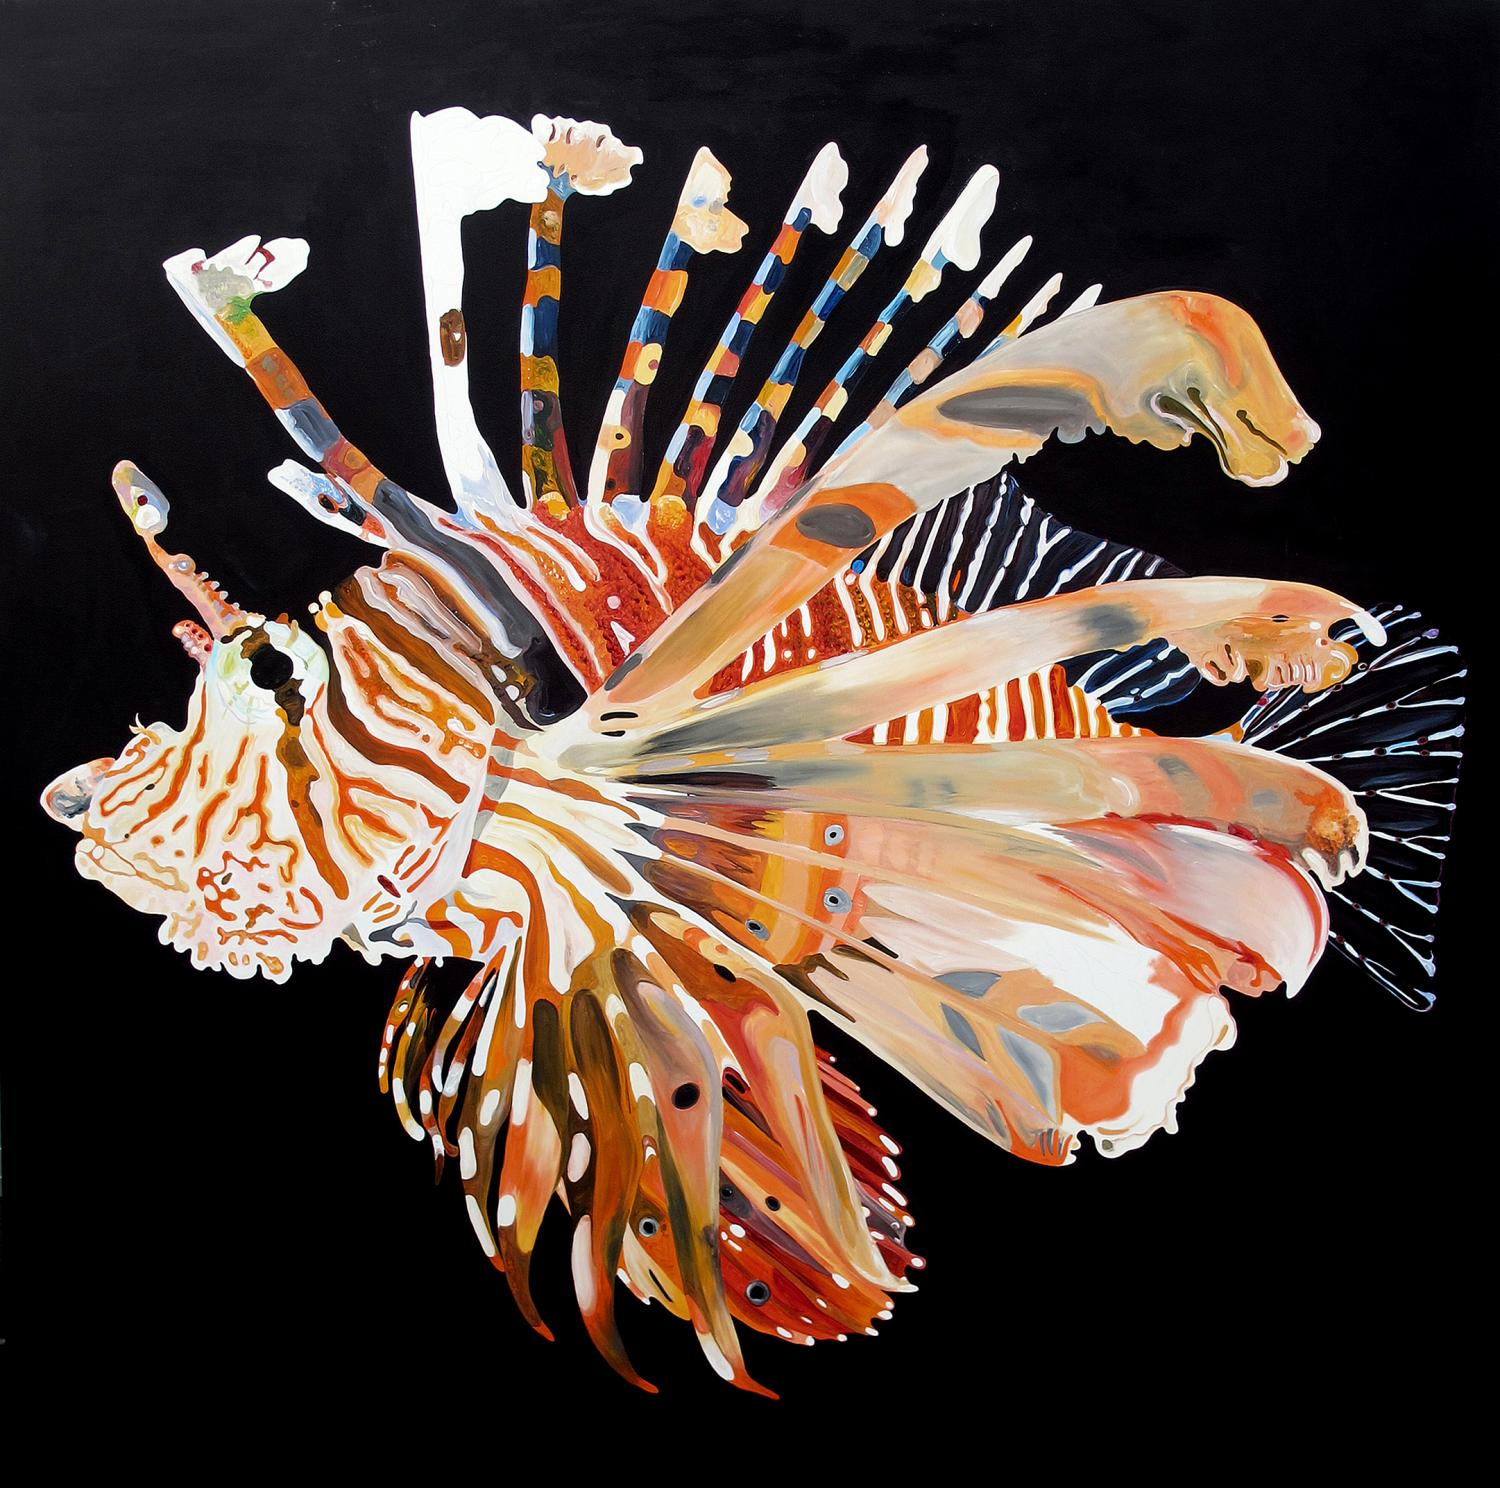 The Lion Fish · Acrílico sobre tela · 200 x 200 cm · 2013